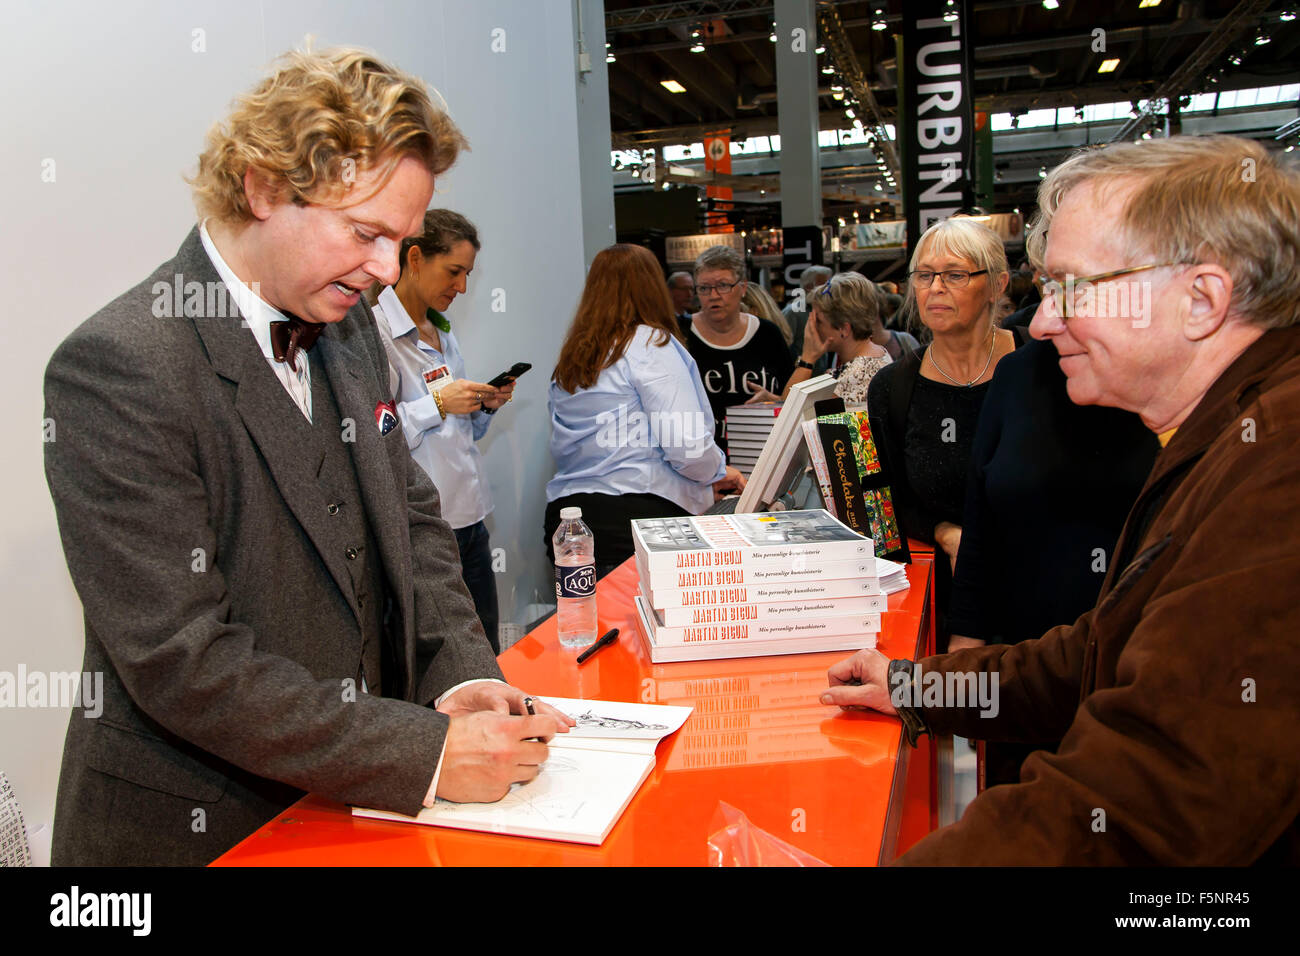 Copenhagen, Denmark, November 7th, 2015. Author Martin Bigum sign his new art book for fans at Copenhagen Bookfair. - Stock Image